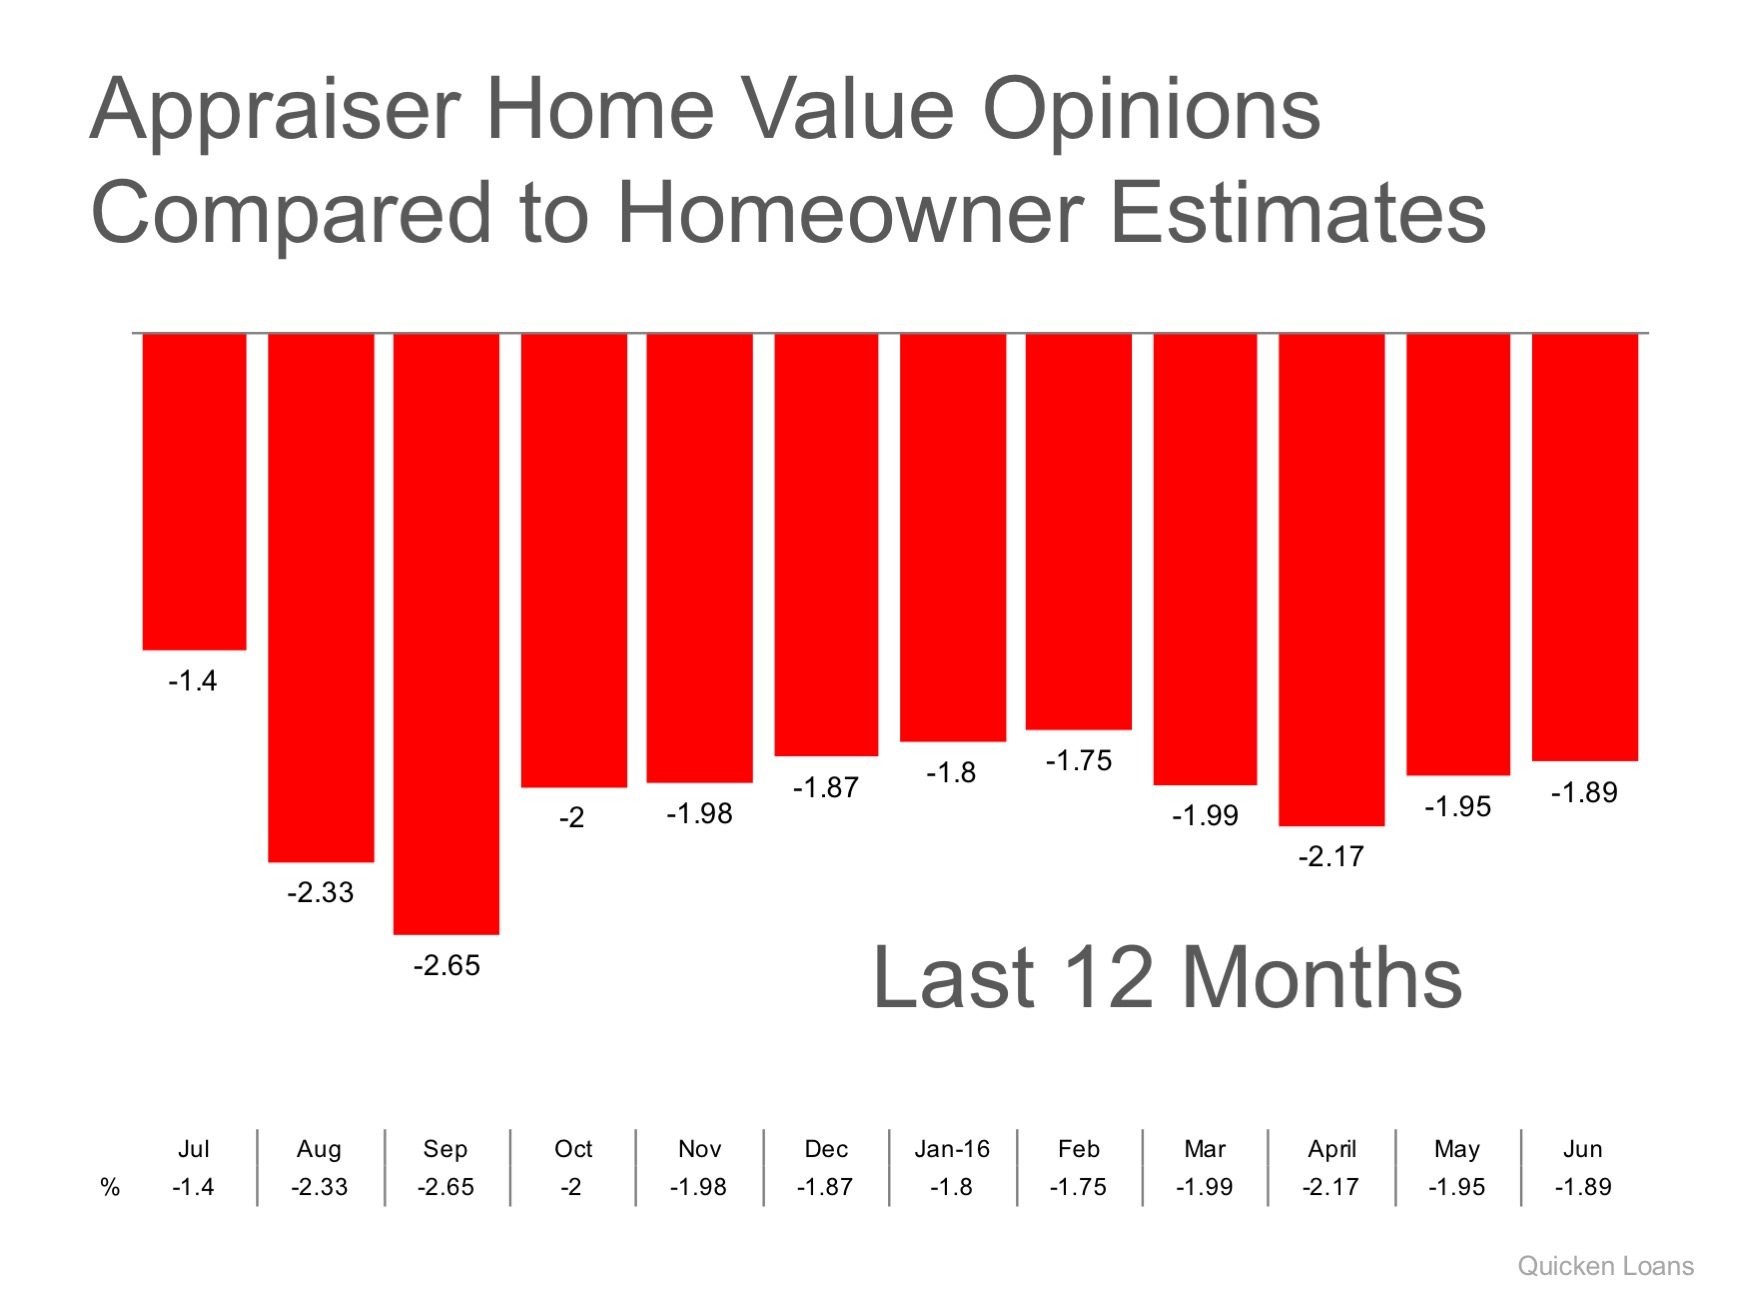 Gap Between Homeowner's & Appraiser's Opinions Narrows Slightly | Simplifying The Market